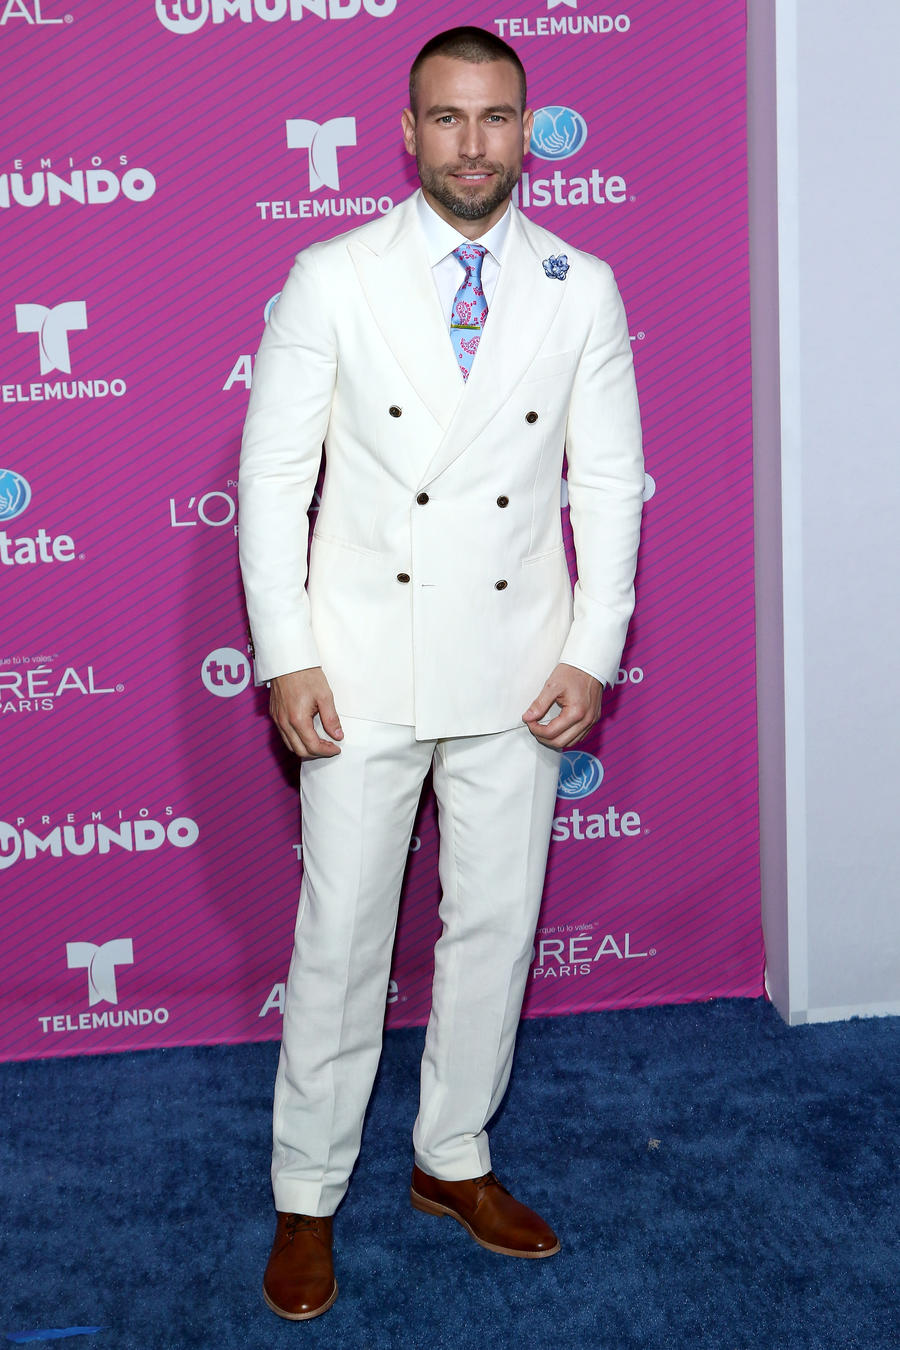 Rafael Amaya on the blue carpet of Premios Tu Mundo 2015